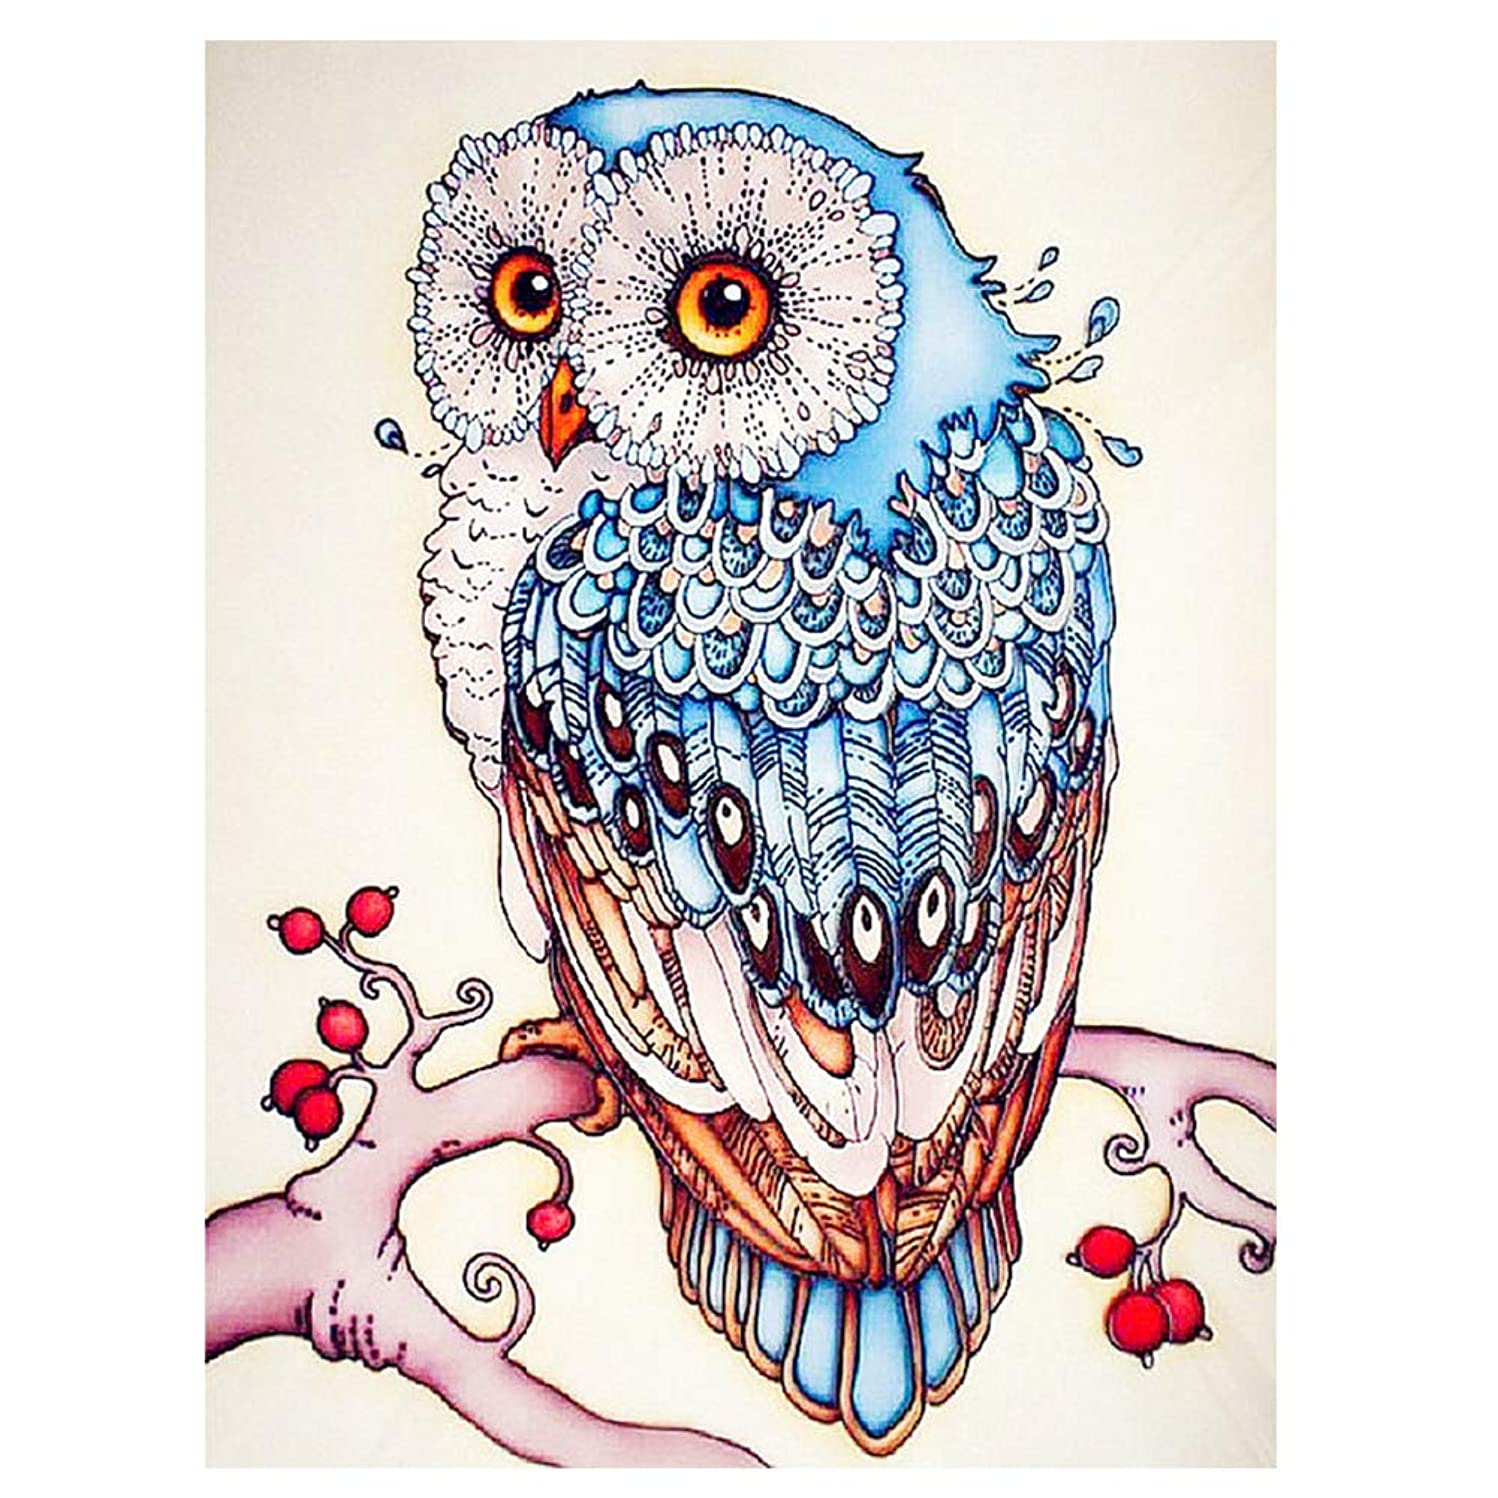 HuaCan 5D DIY Diamond Painting Animal Full Square Drill Owl Rhinestone Embroidery Cross Stitch Mosaic Arts Craft Paint by Number Kits Wall Decoration for Adults Kids 30x40cm/11.8x15.7in